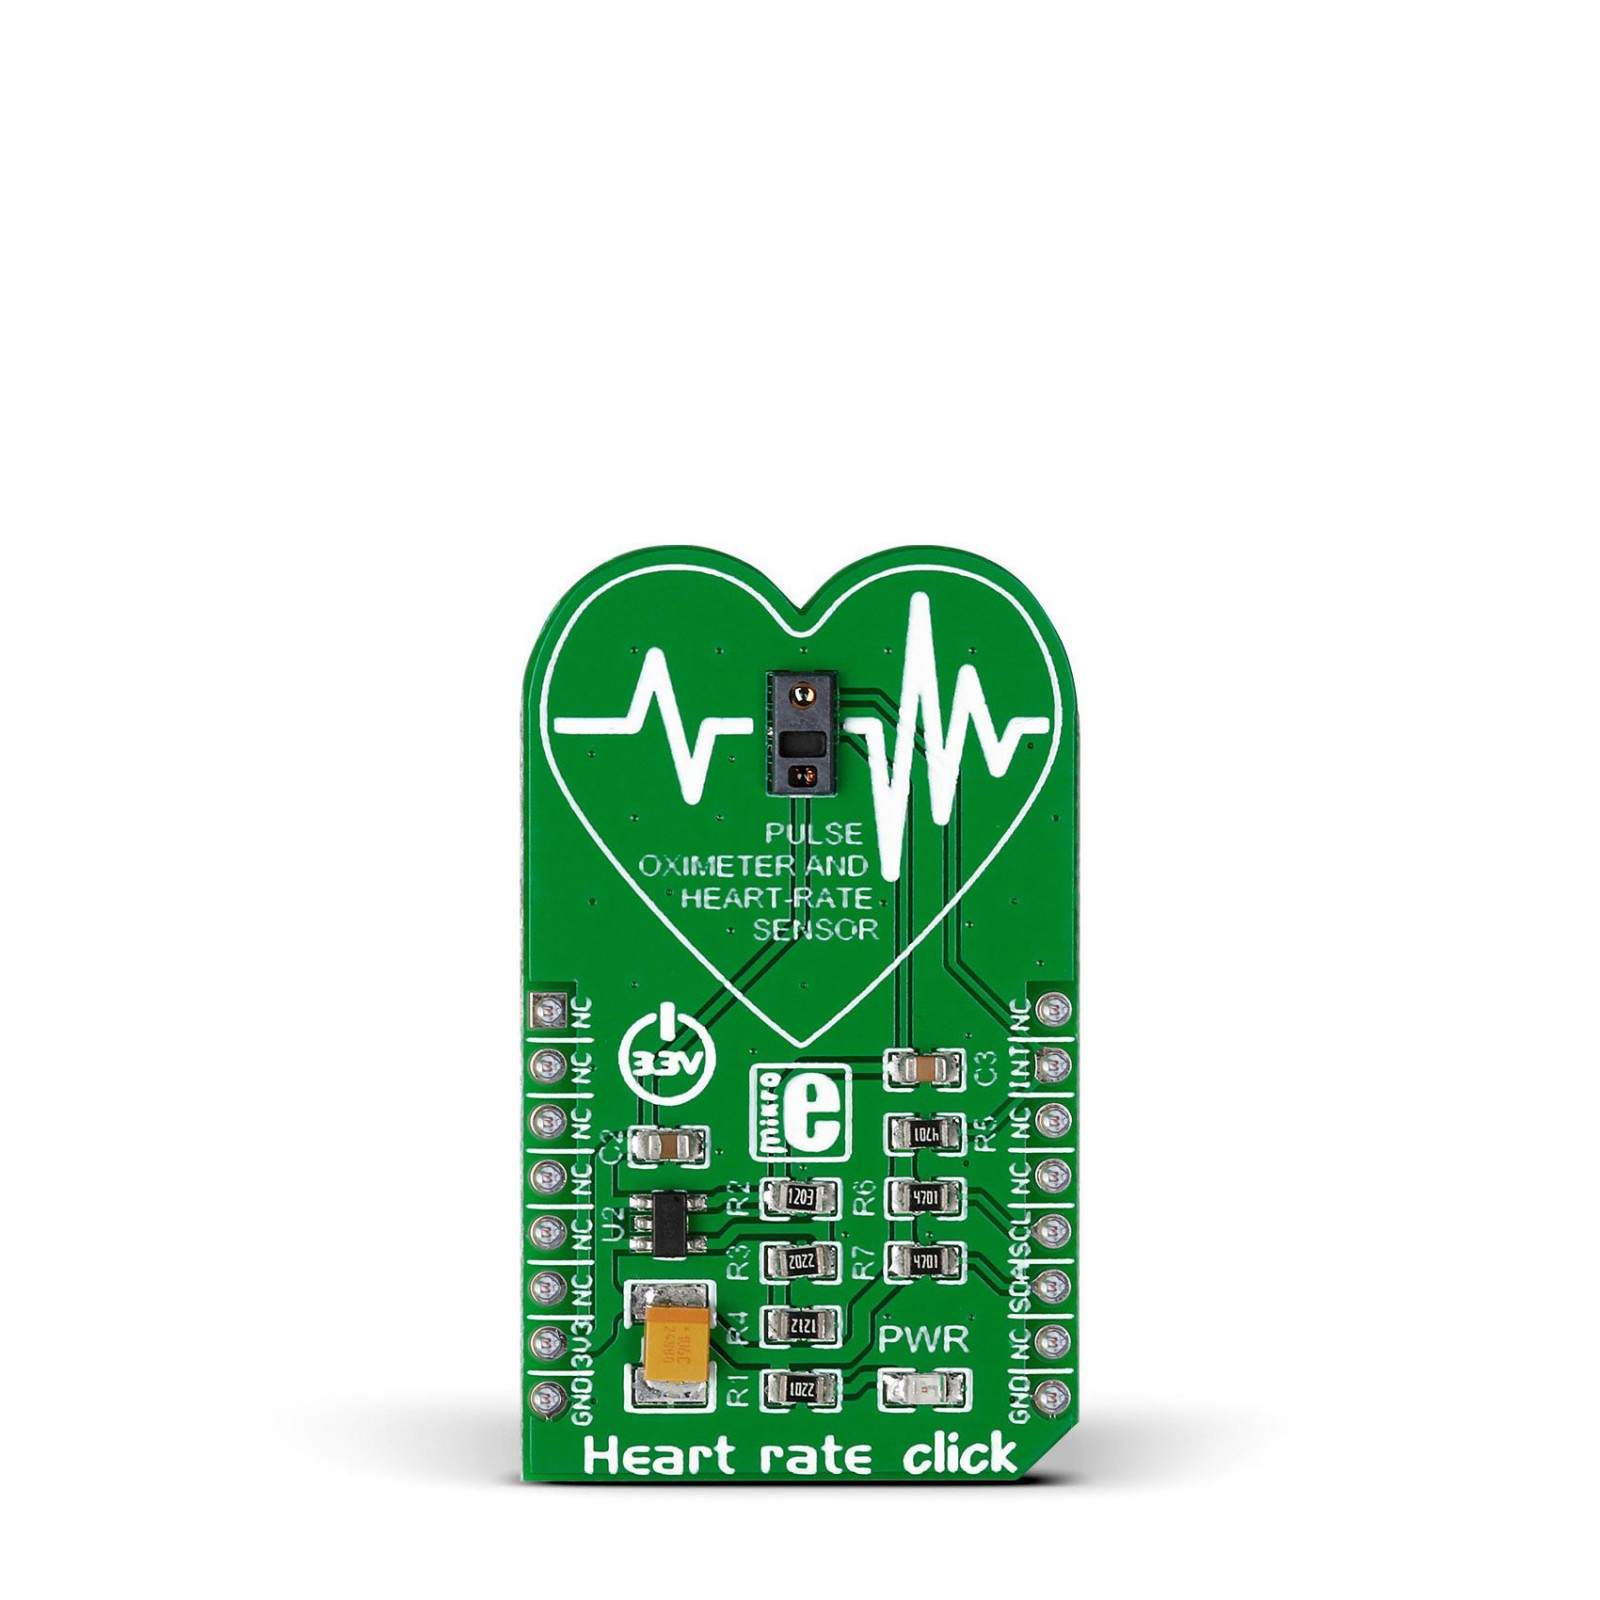 Heart Rate Click Board With Maxims Max30100 Integrated Pulse O2 Sensor Wiring Diagram Is The Stock That Mgctlbxnmzp Mgctlbxv5112 Mgctlbxlc Mgctlbxpprestashop